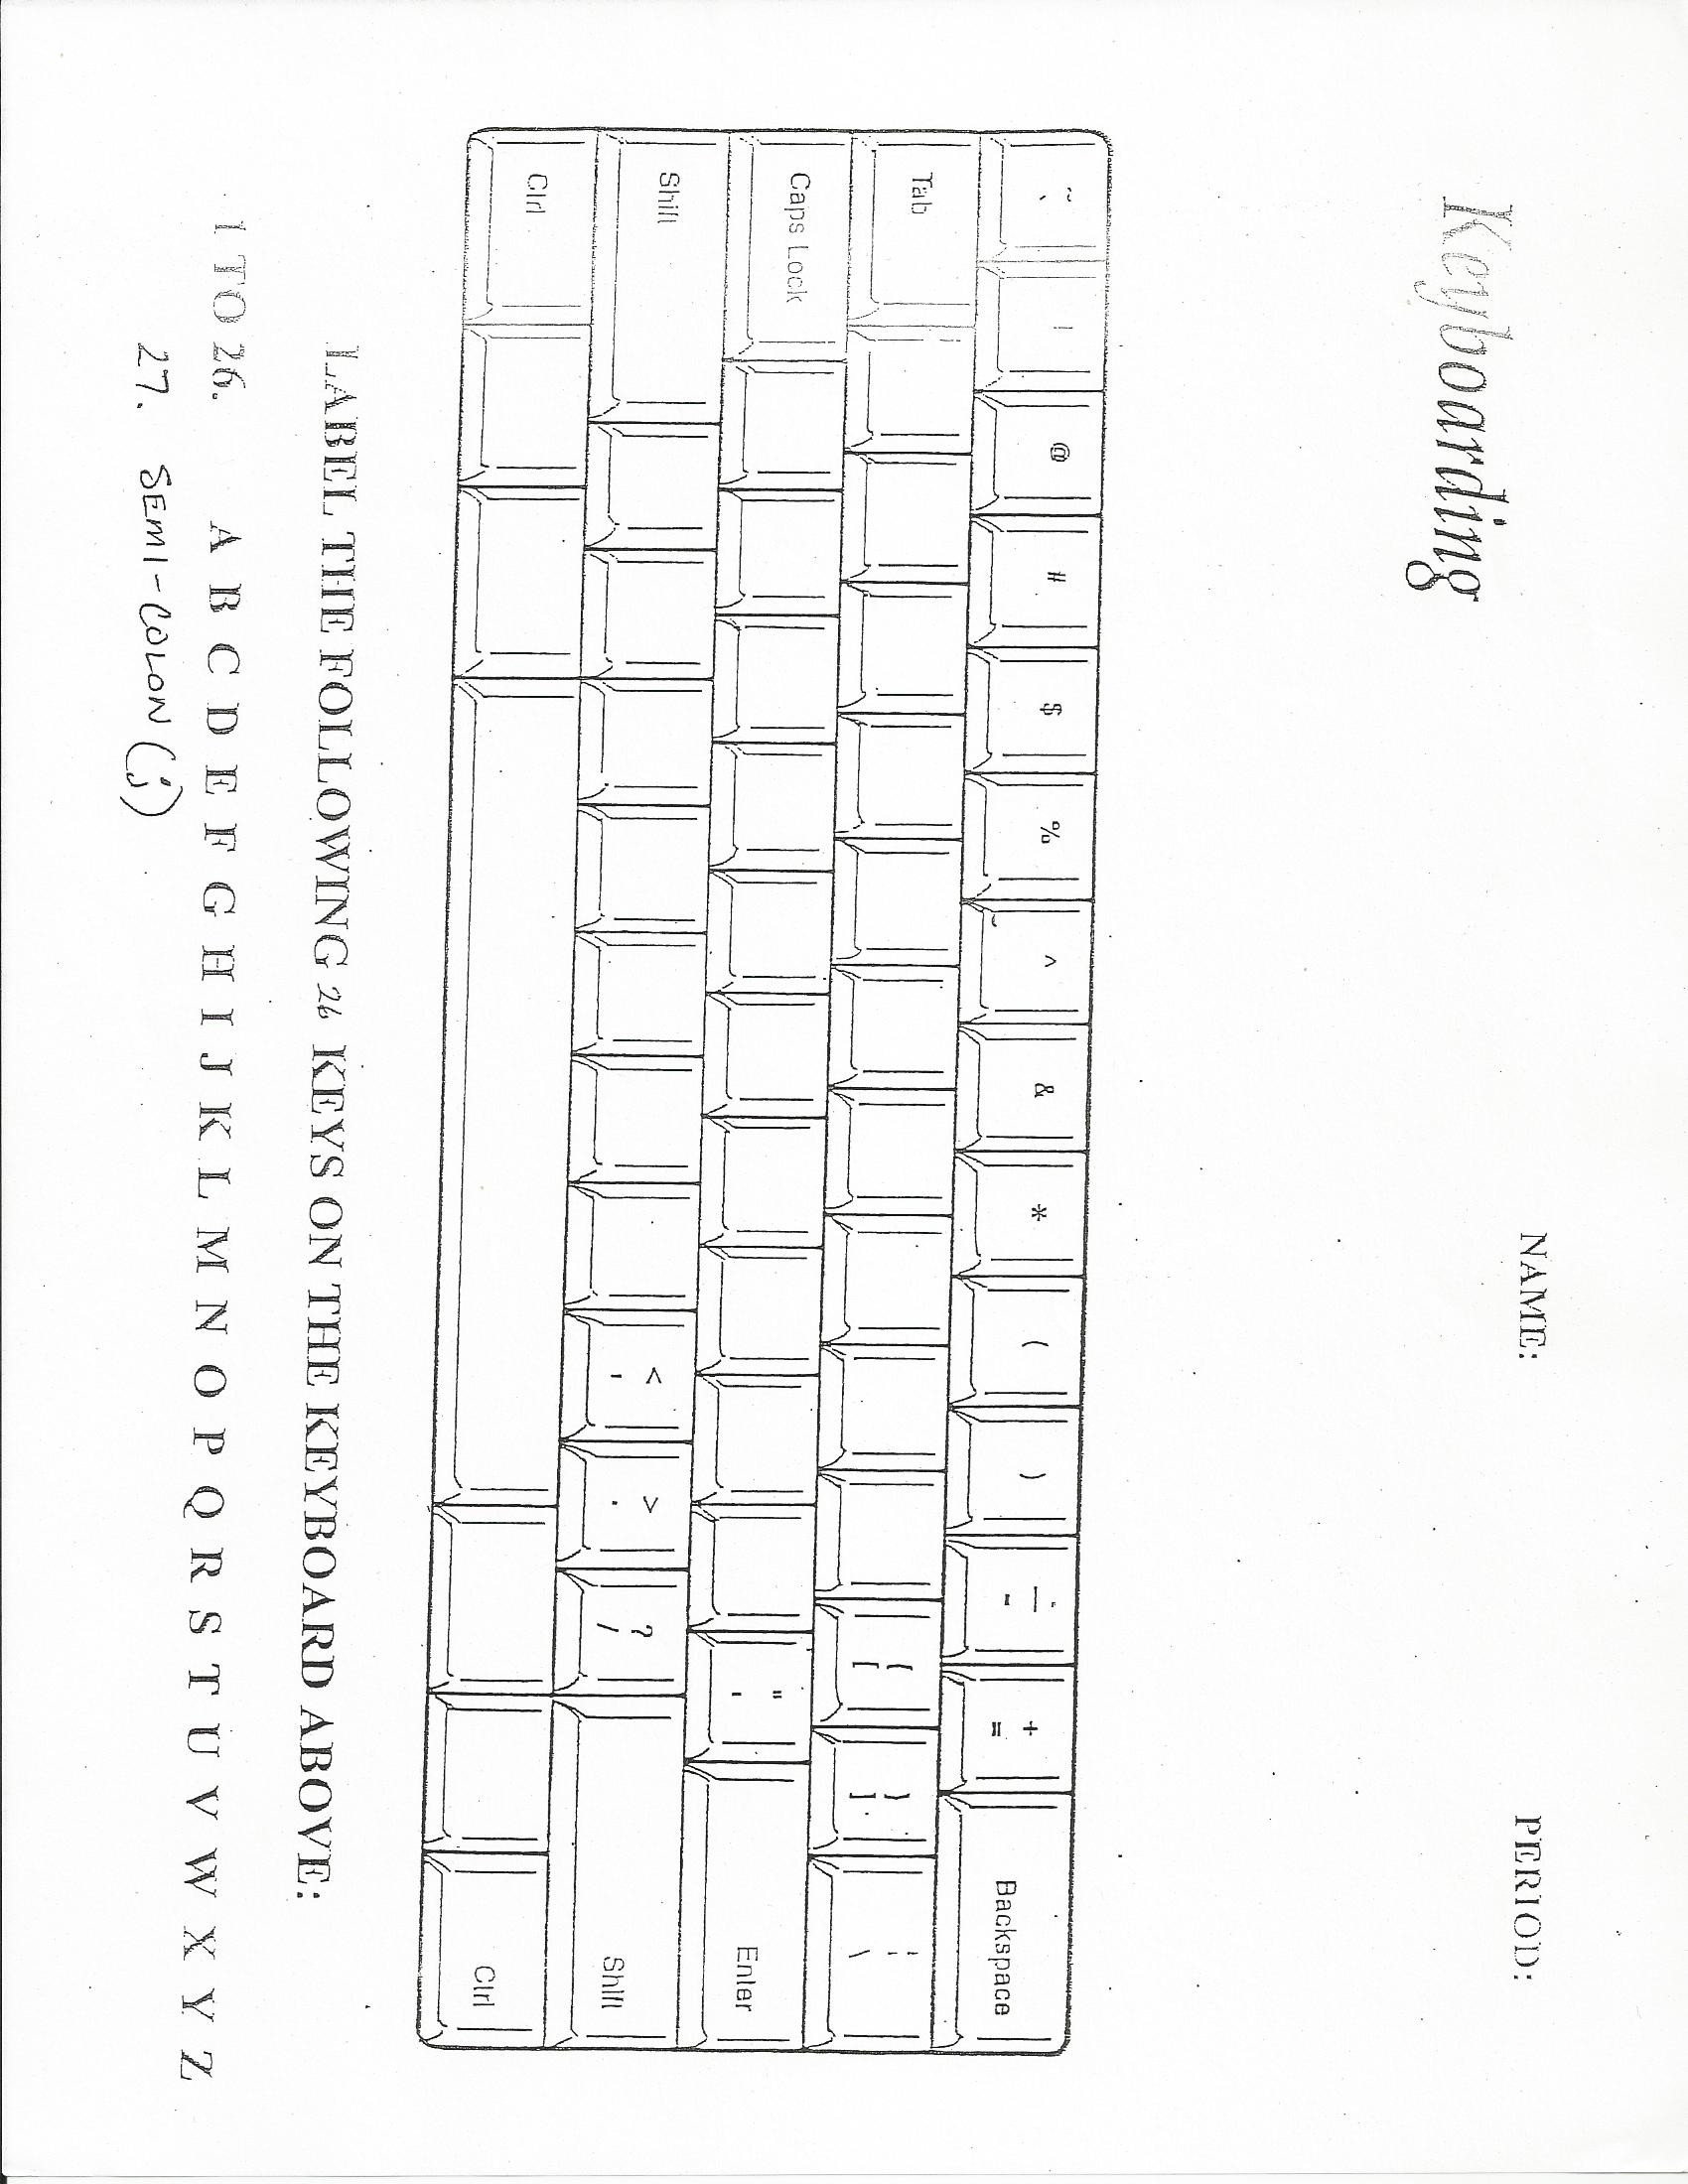 Printable Keyboarding Worksheets Puter Puzzles Worksheets